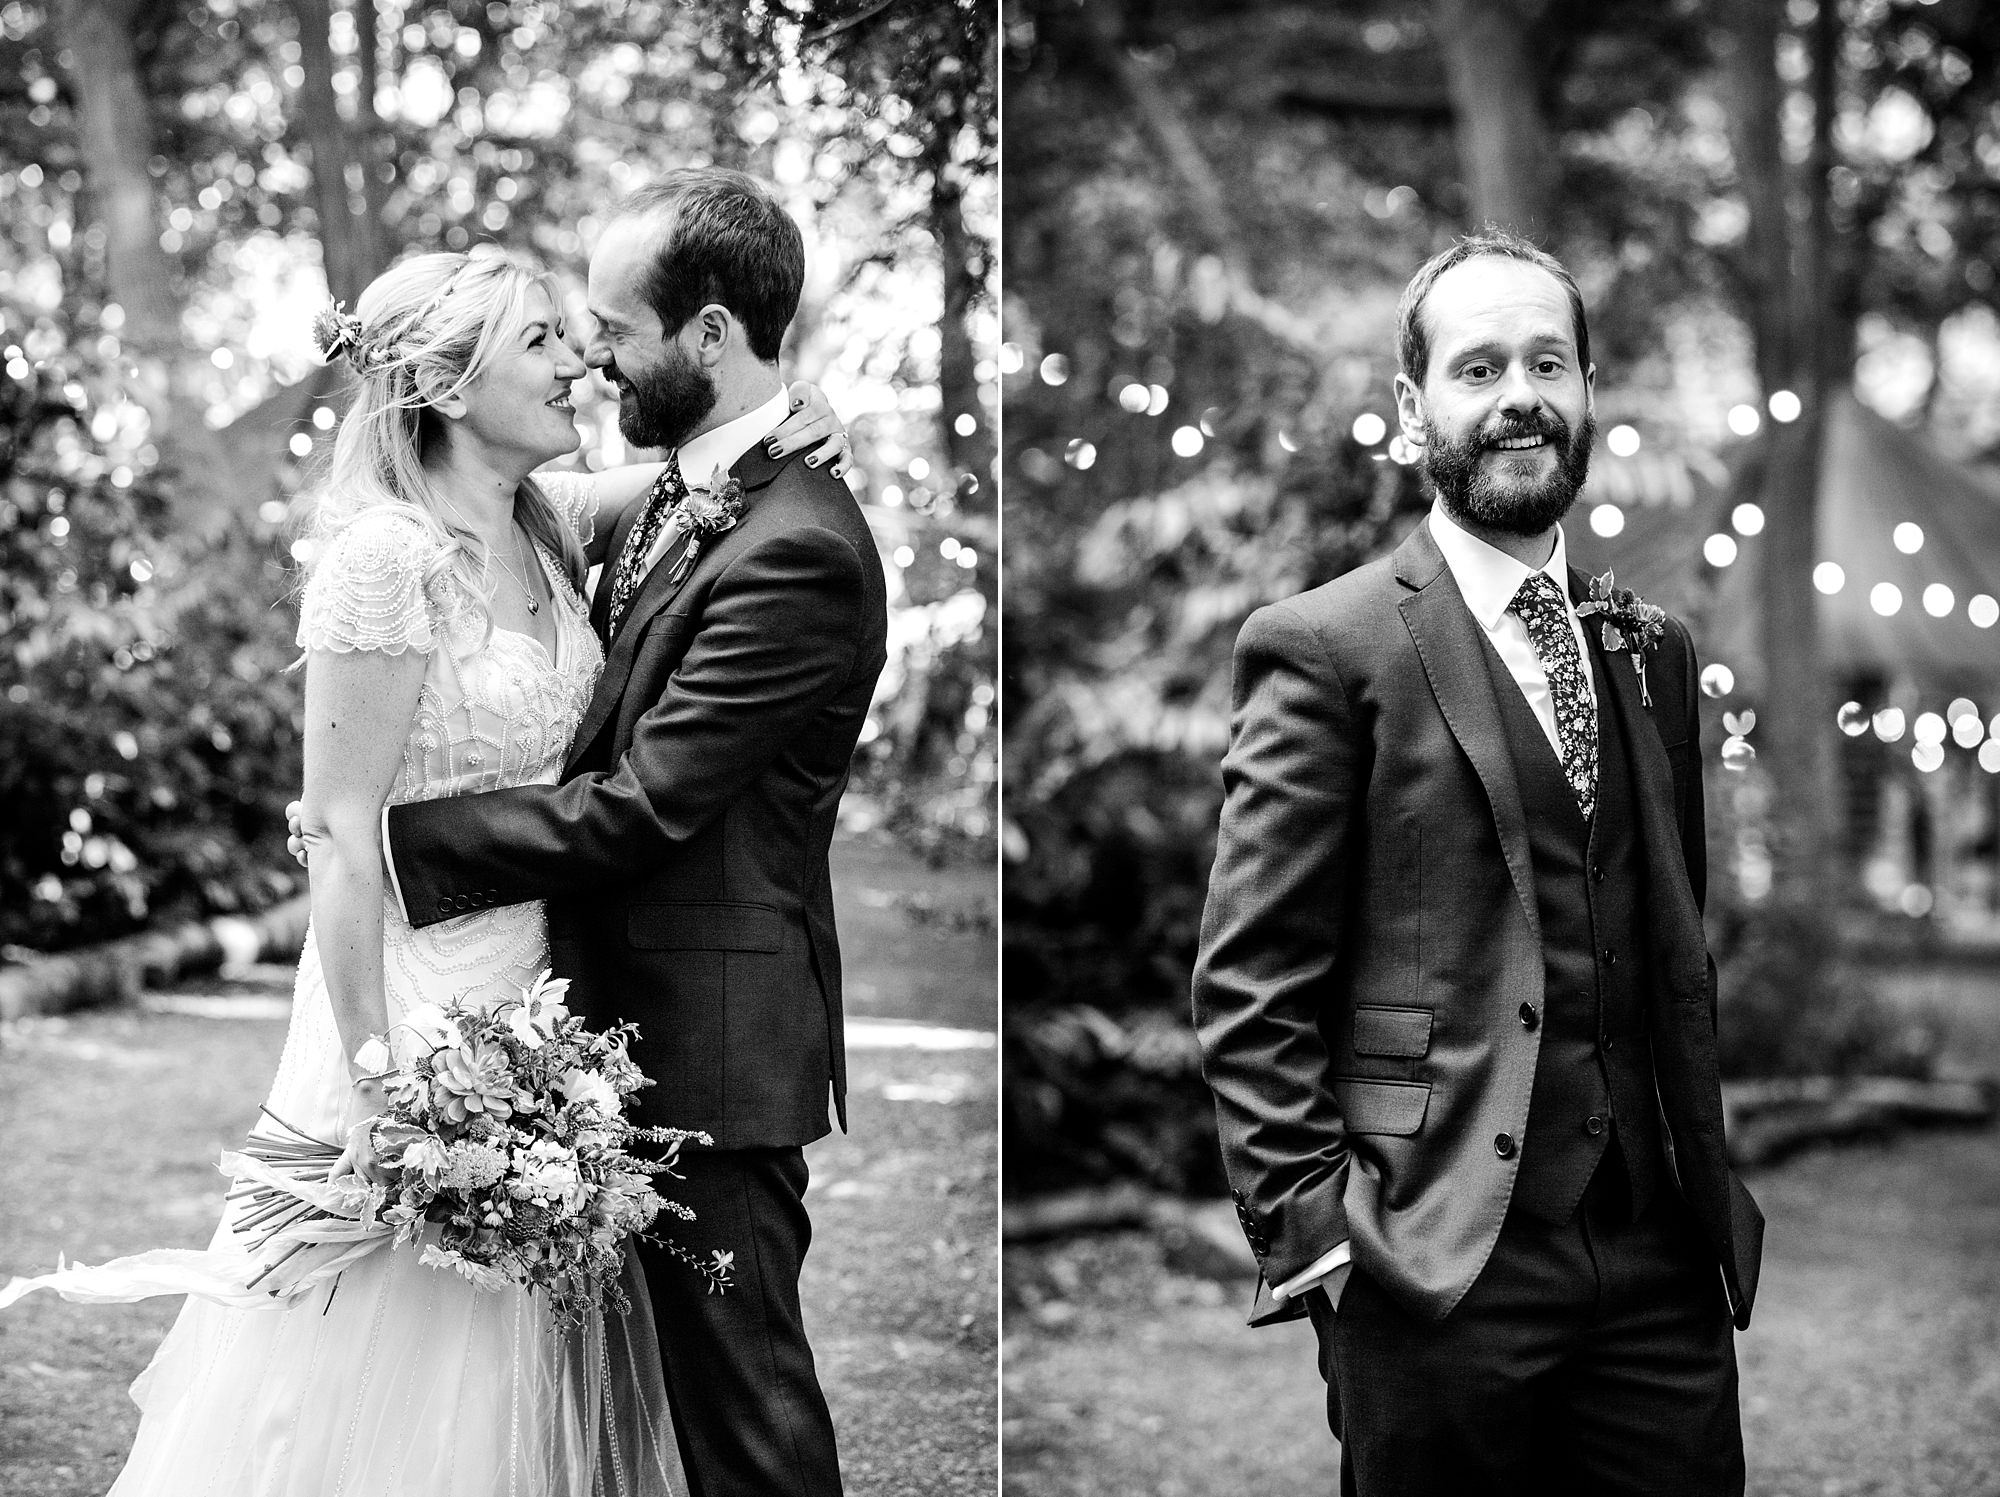 Woodland Weddings Tring bride and groom portrait